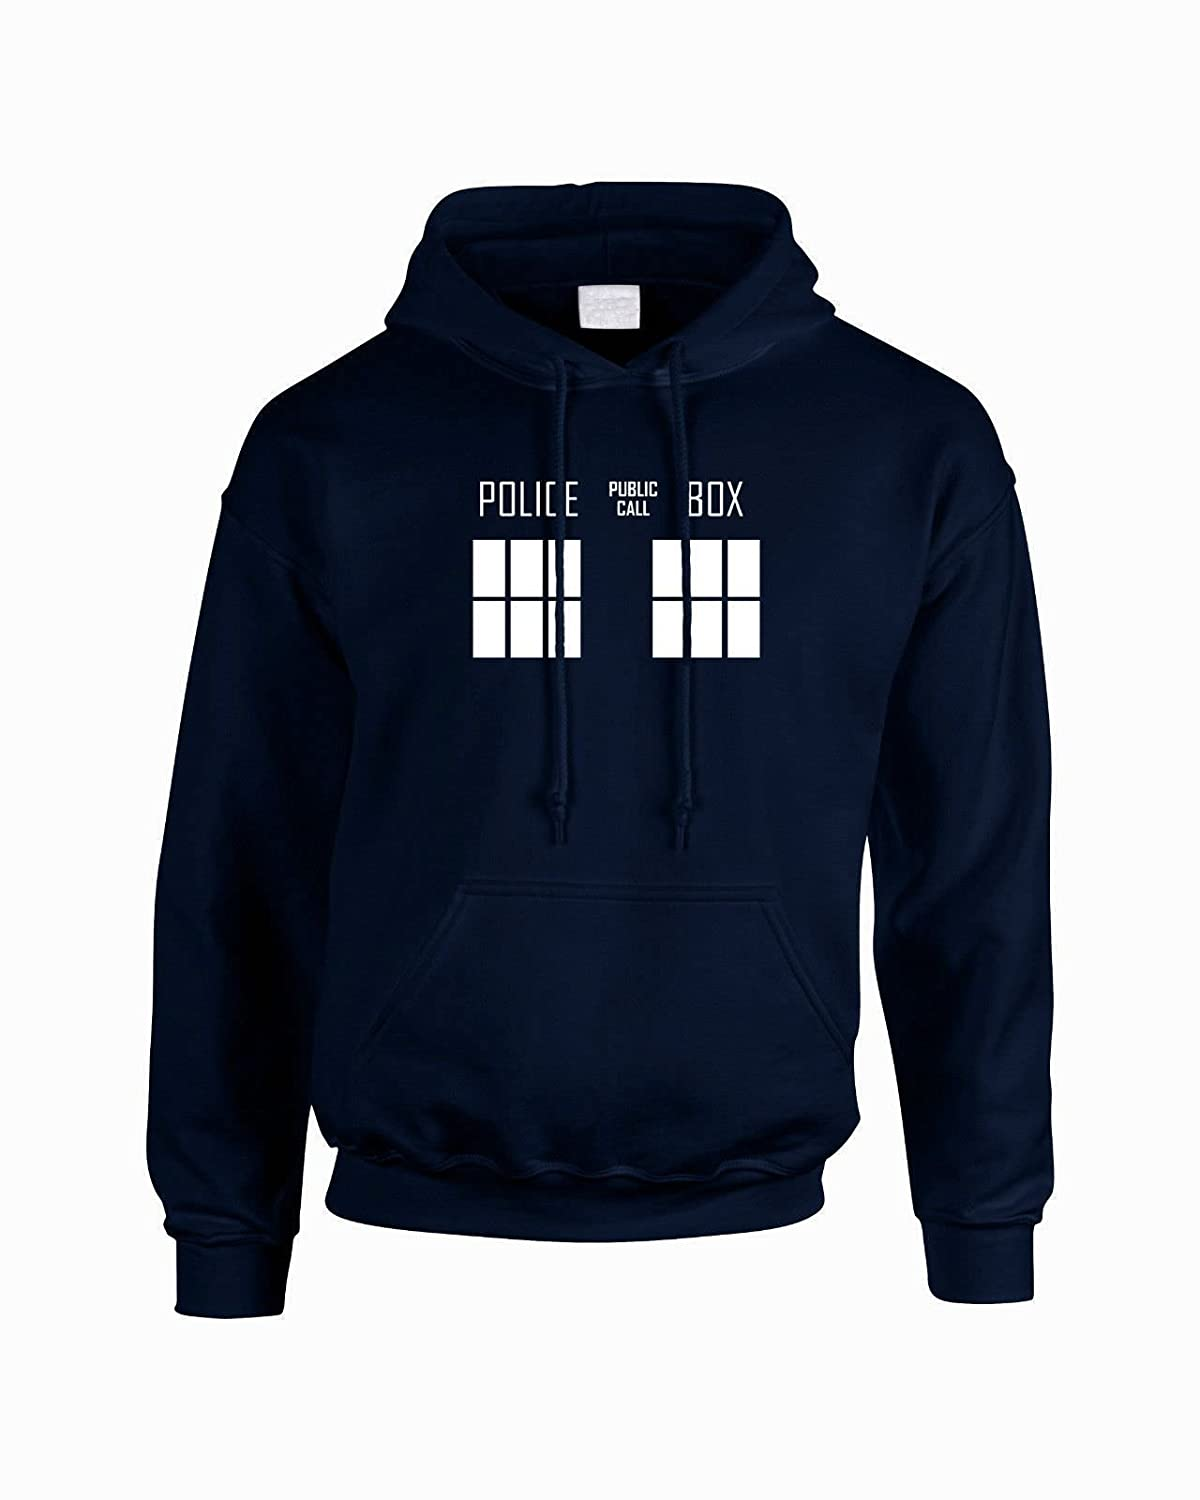 INSPIRED PREMIUM DOCTOR WHO POLICE BOX TARDIS HOODIE NAVY SWEAT JUMPER (S M L XL XXL)